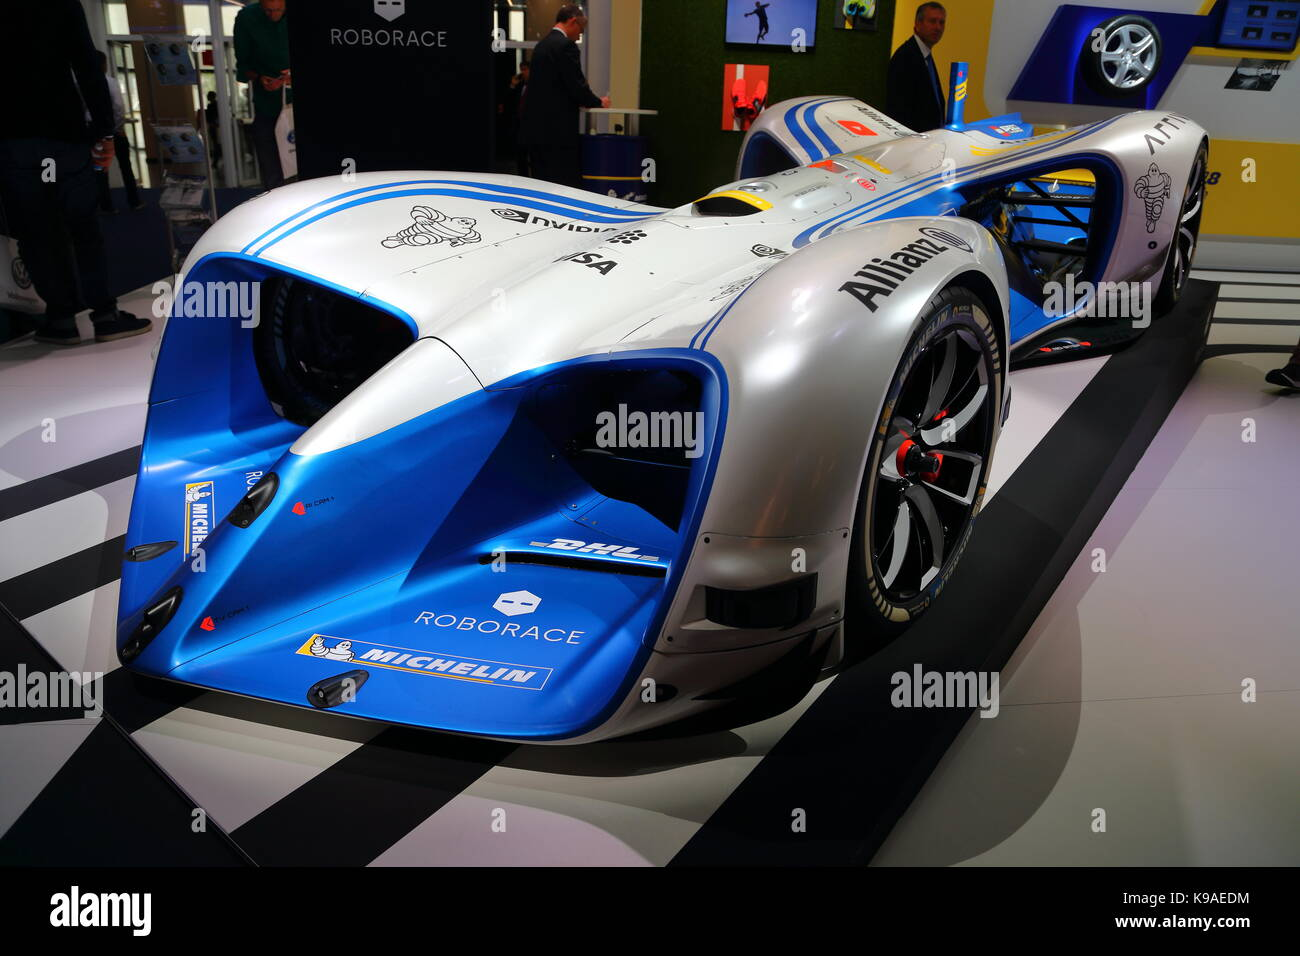 Car Manufacturers From All Over The World Present Their Newest - Sports cars manufacturers